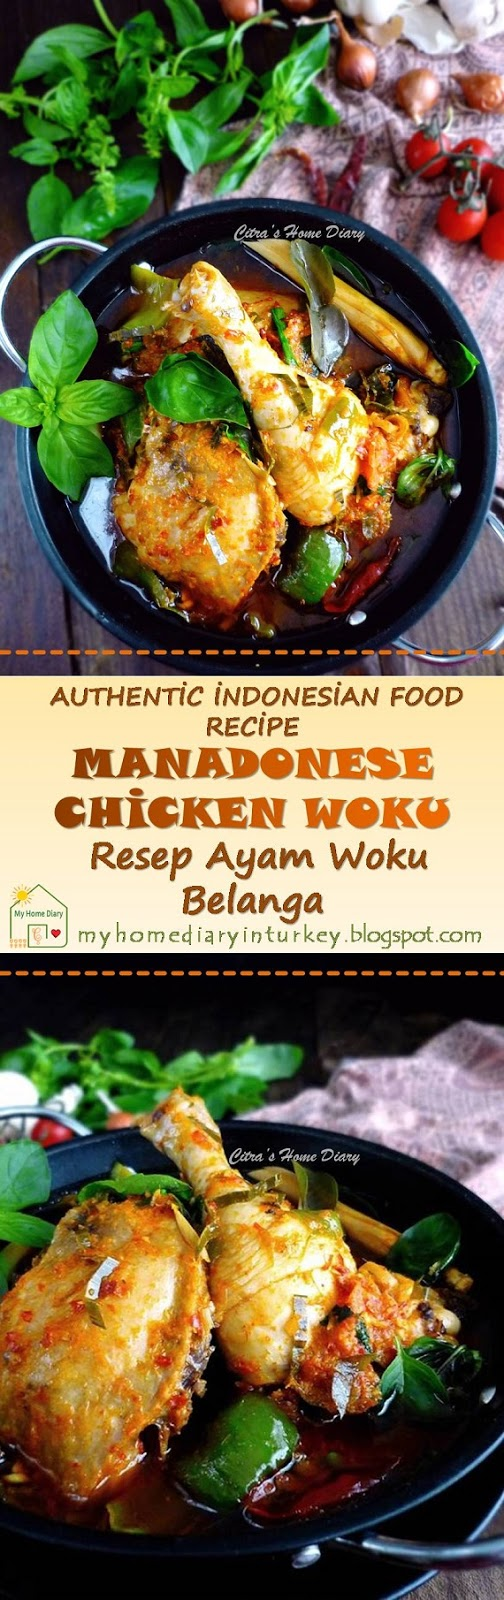 Citra S Home Diary Authentic Indonesian Food Recipe Manadonese Chicken Woku Ayam Woku Belanga